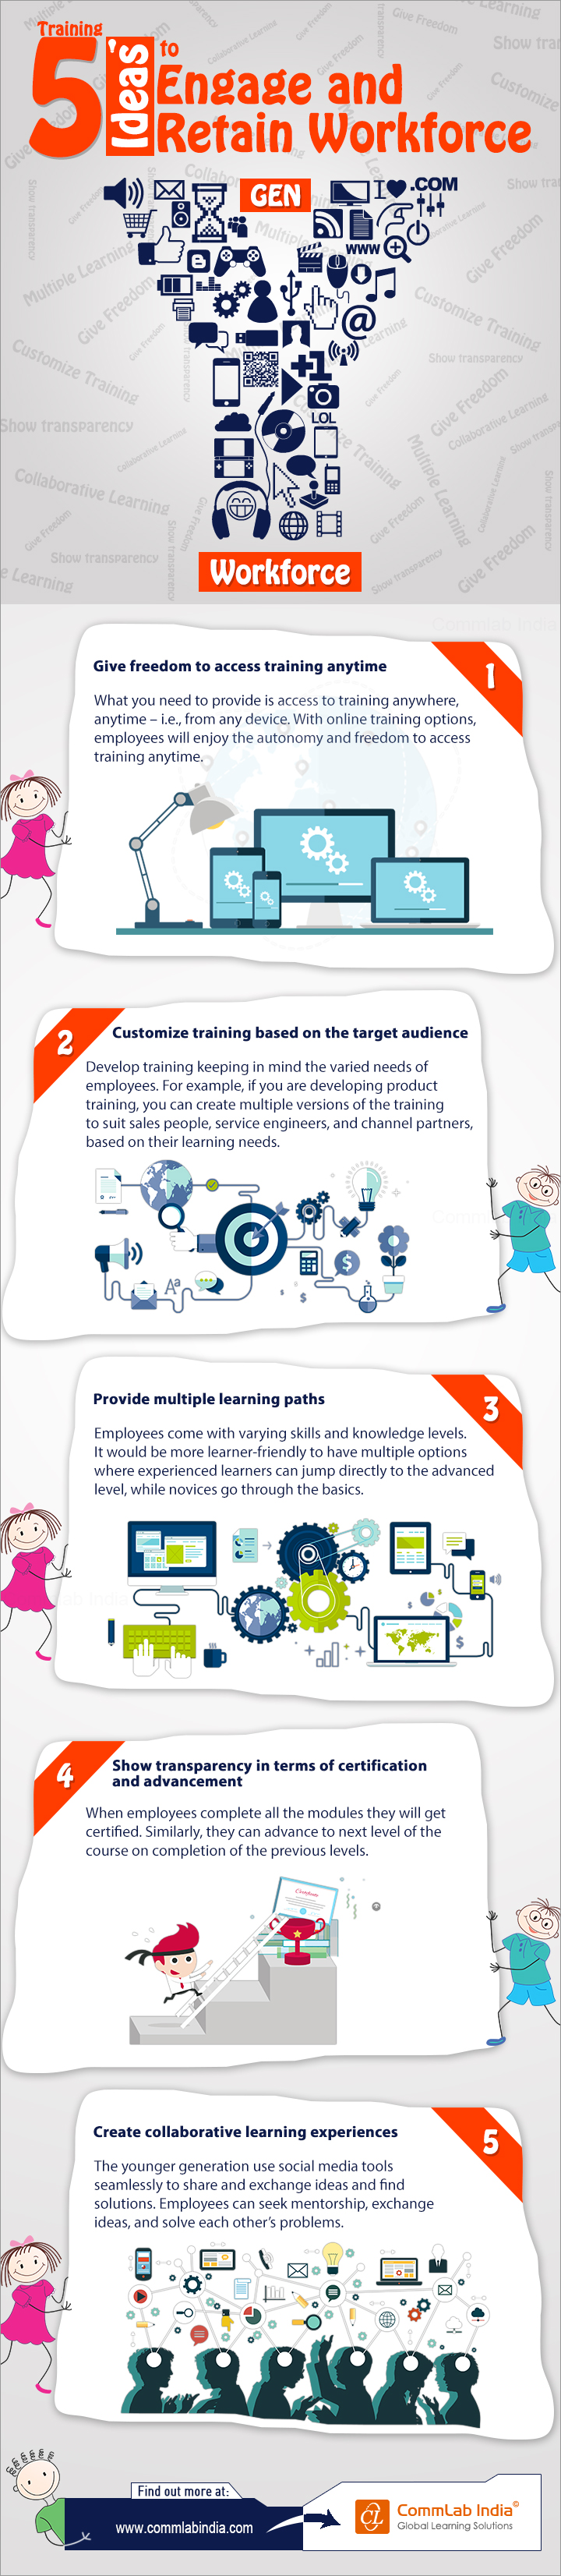 training ideas to engage and retain gen y workforce infographic 5 training ideas to engage and retain gen y workforce infographic